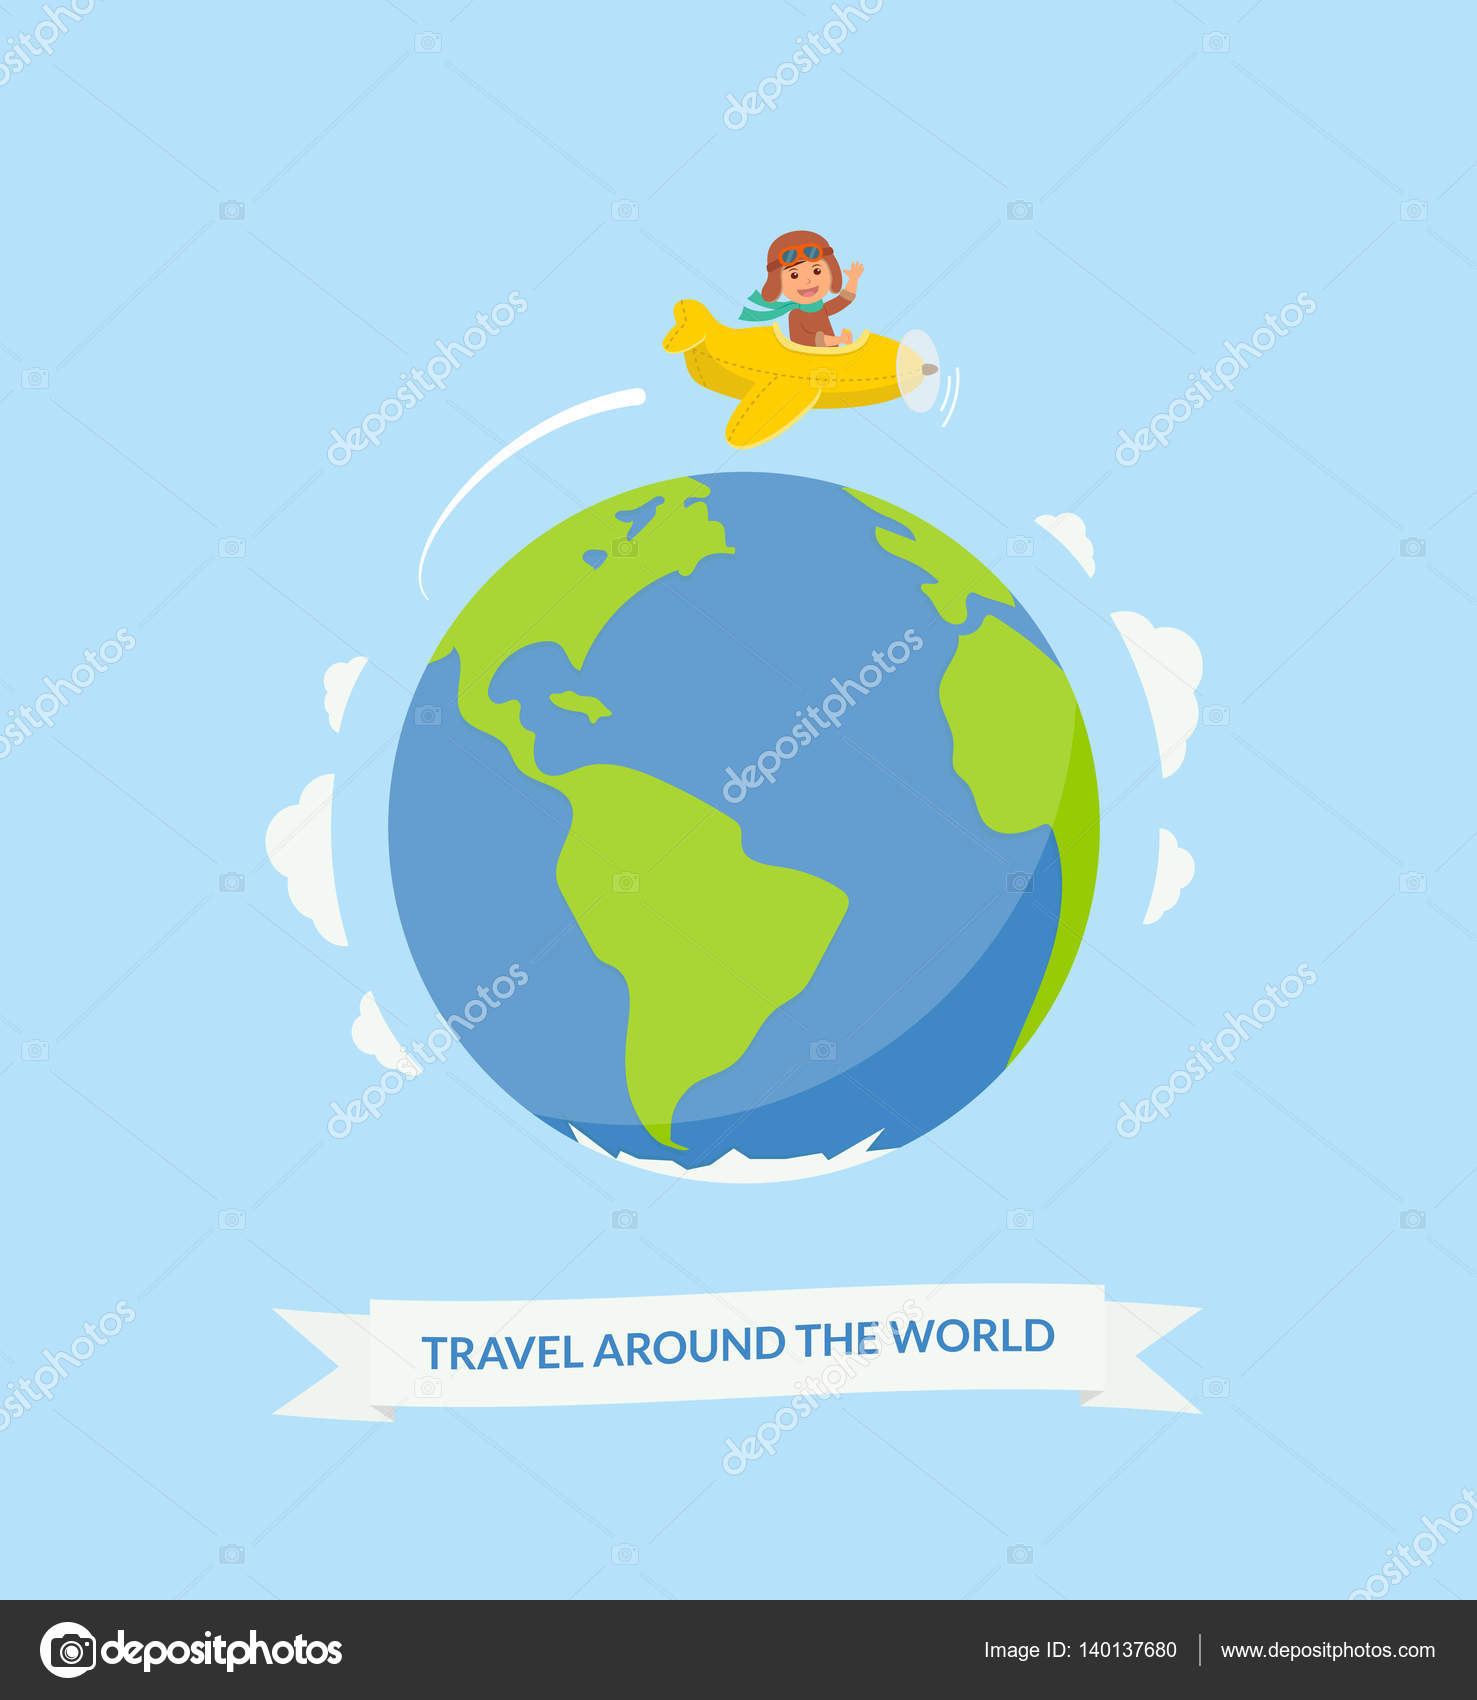 Cartoon Boy Riding Plane Around The World Air Travel Cute Pilot On A Yellow